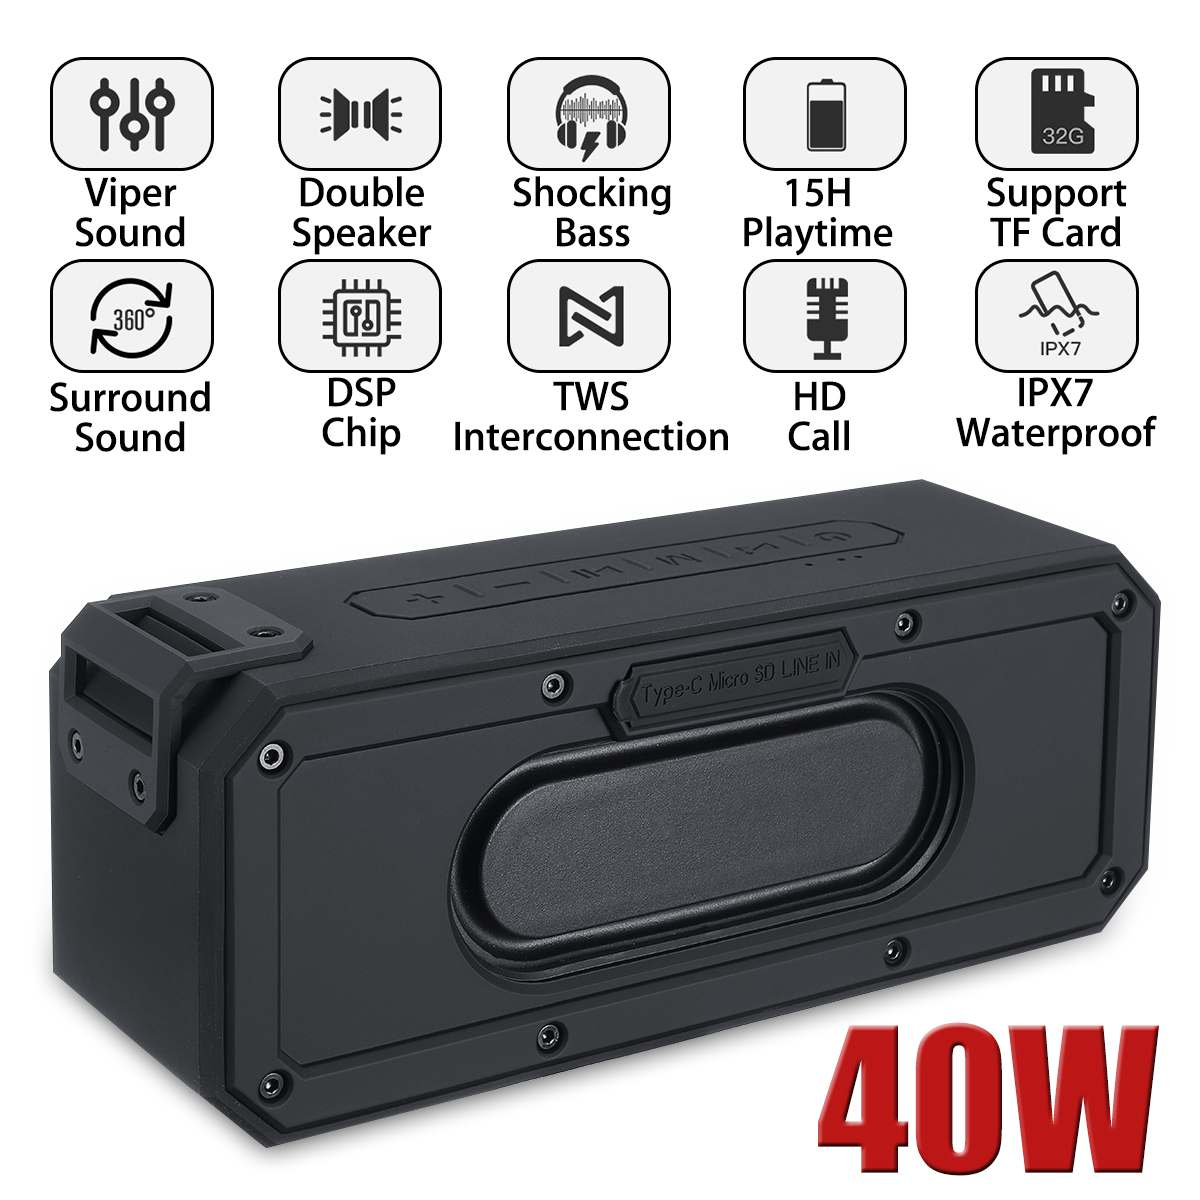 40W Stereo Subwoofer Bluetooth Speaker Bass IP7X Waterproof Column USB Wireless Portable Boombox Outdoor Home Theater Sound Box